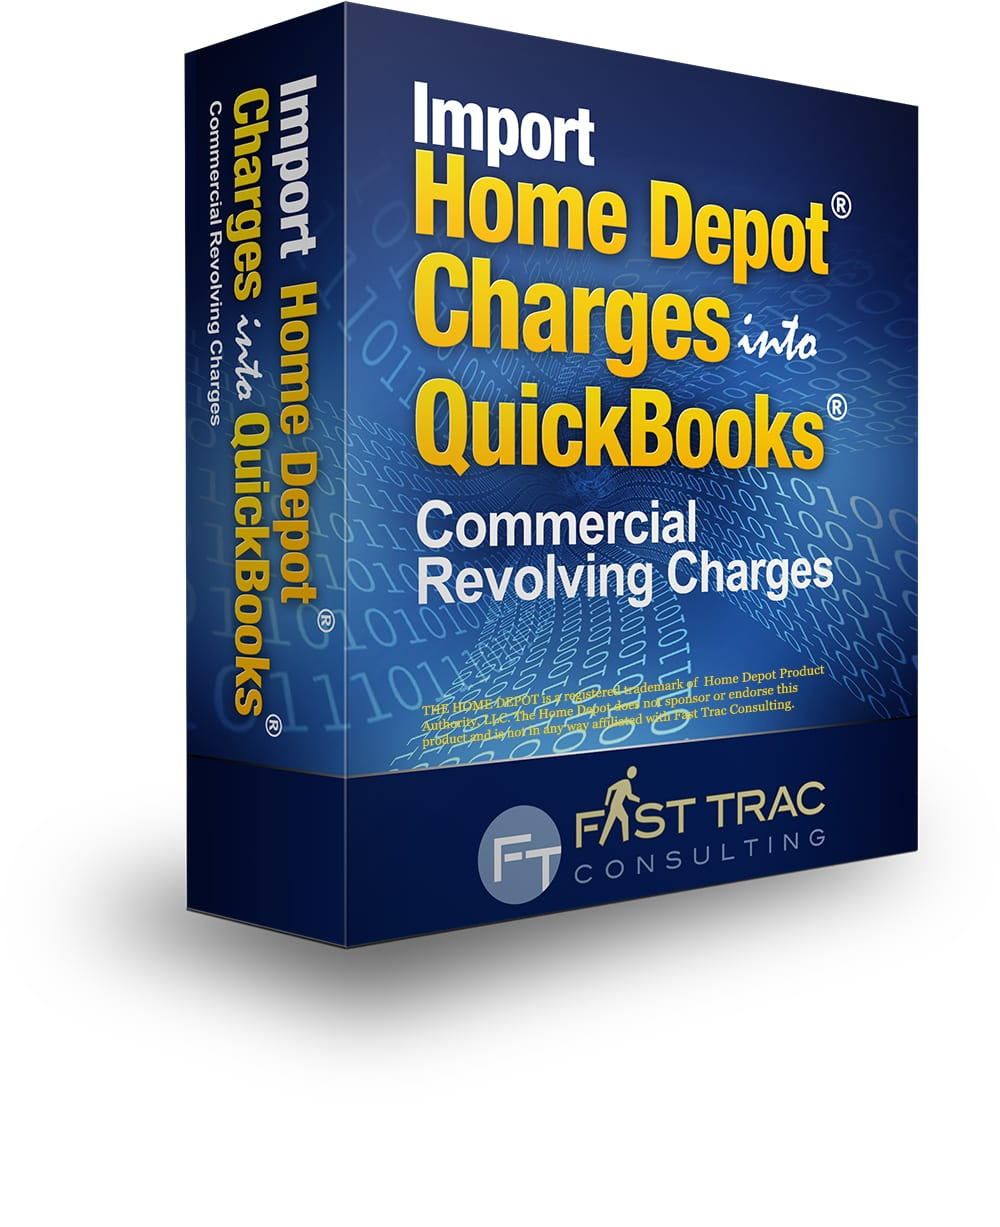 Import Home Depot Commercial Revolving Charges into QuickBooks